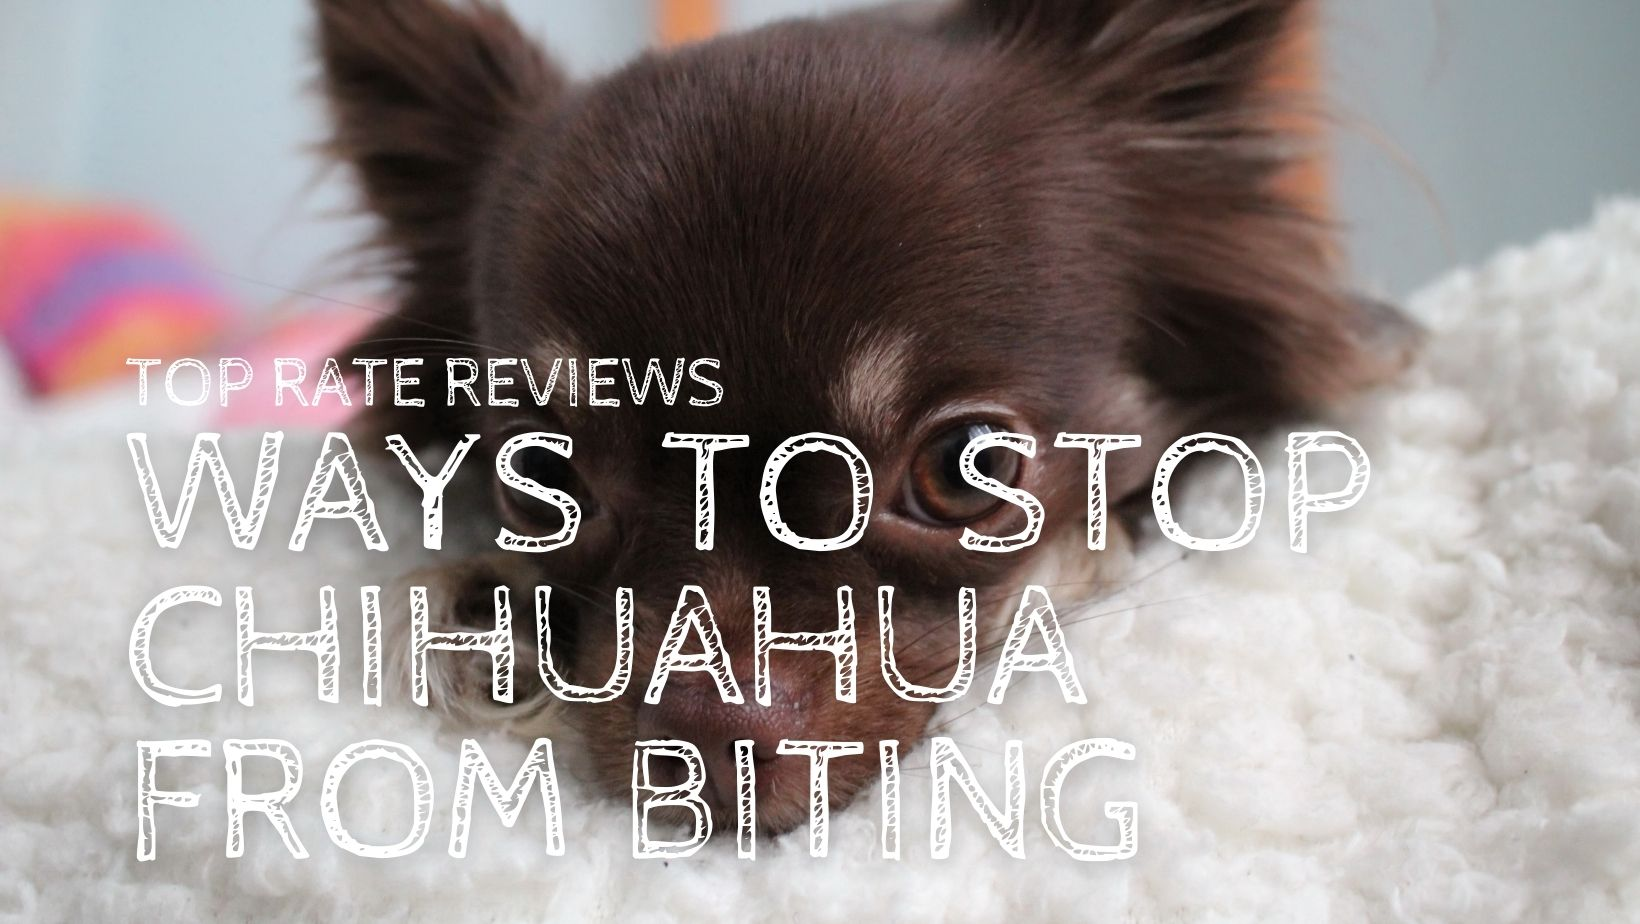 WAYS to Stop Chihuahua from Biting